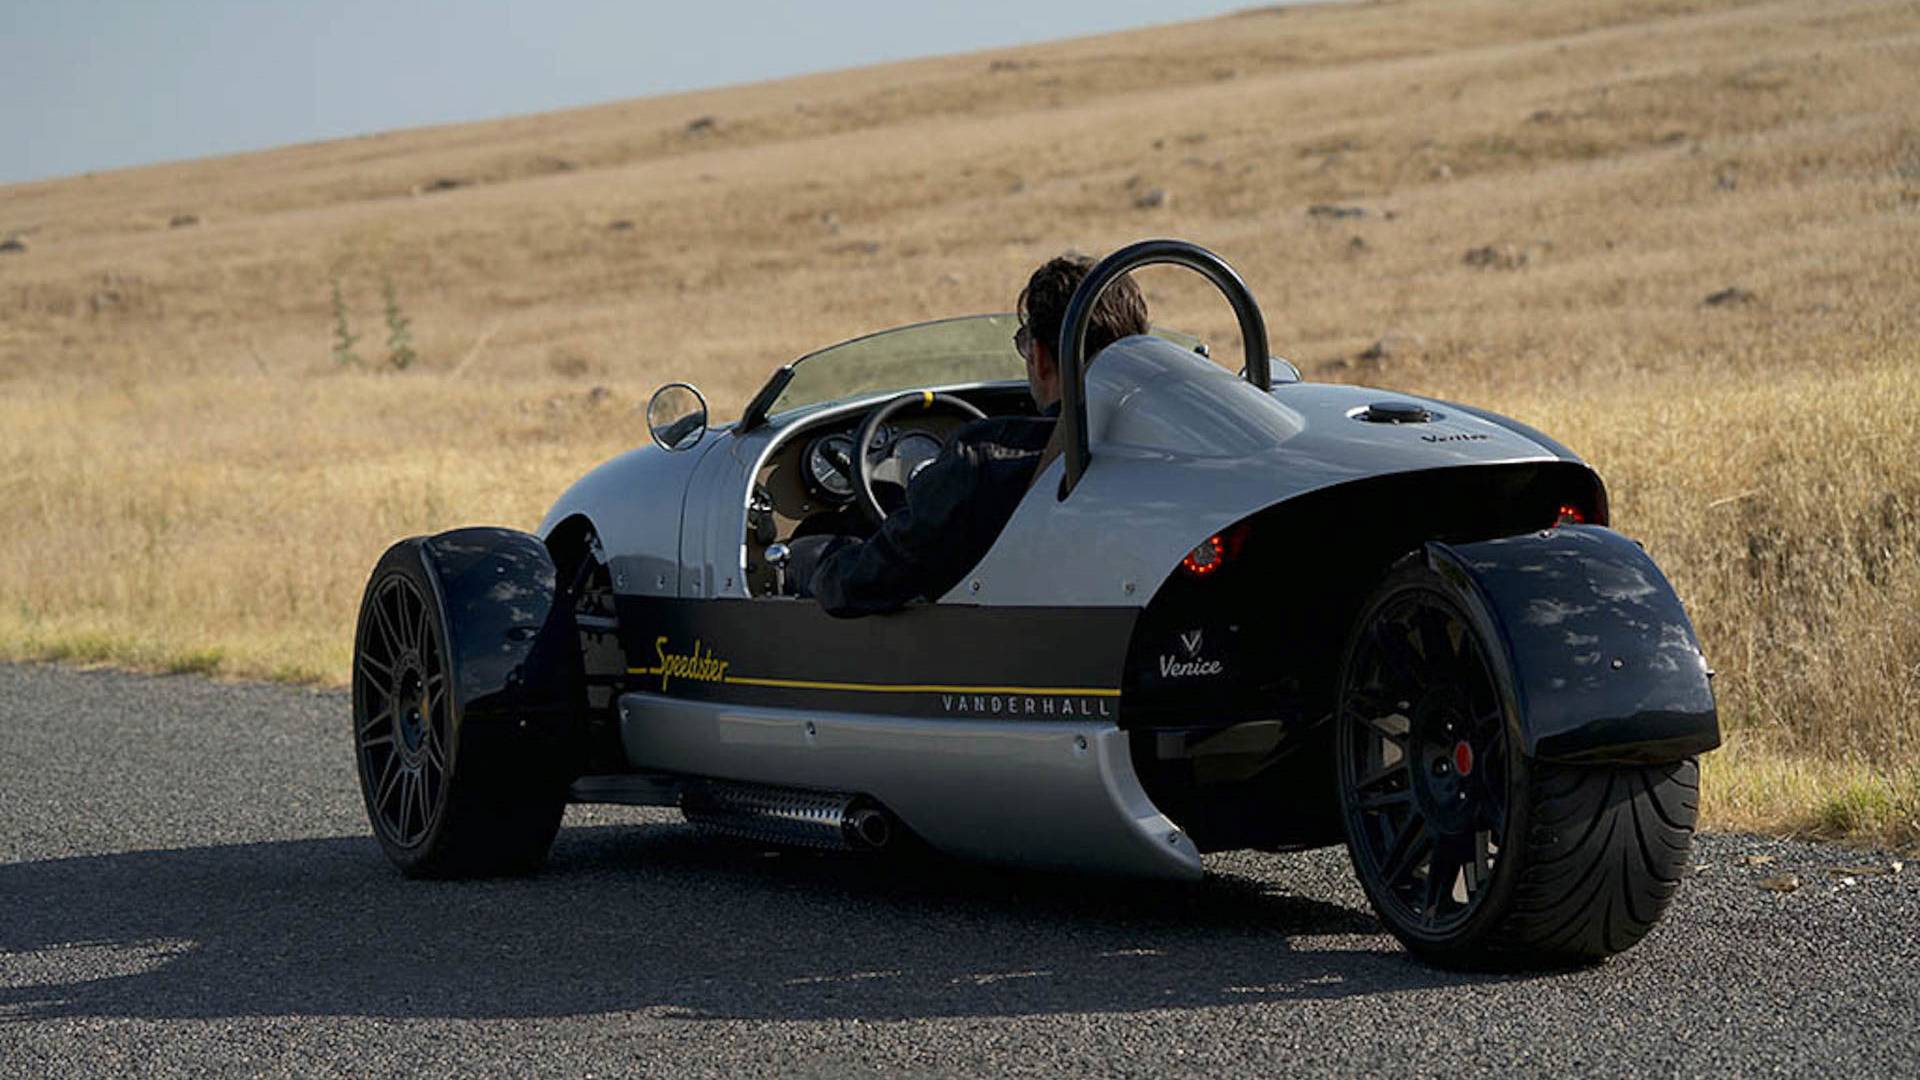 Venice Speedster Is An Affordable Vanderhall But It Has A Problem